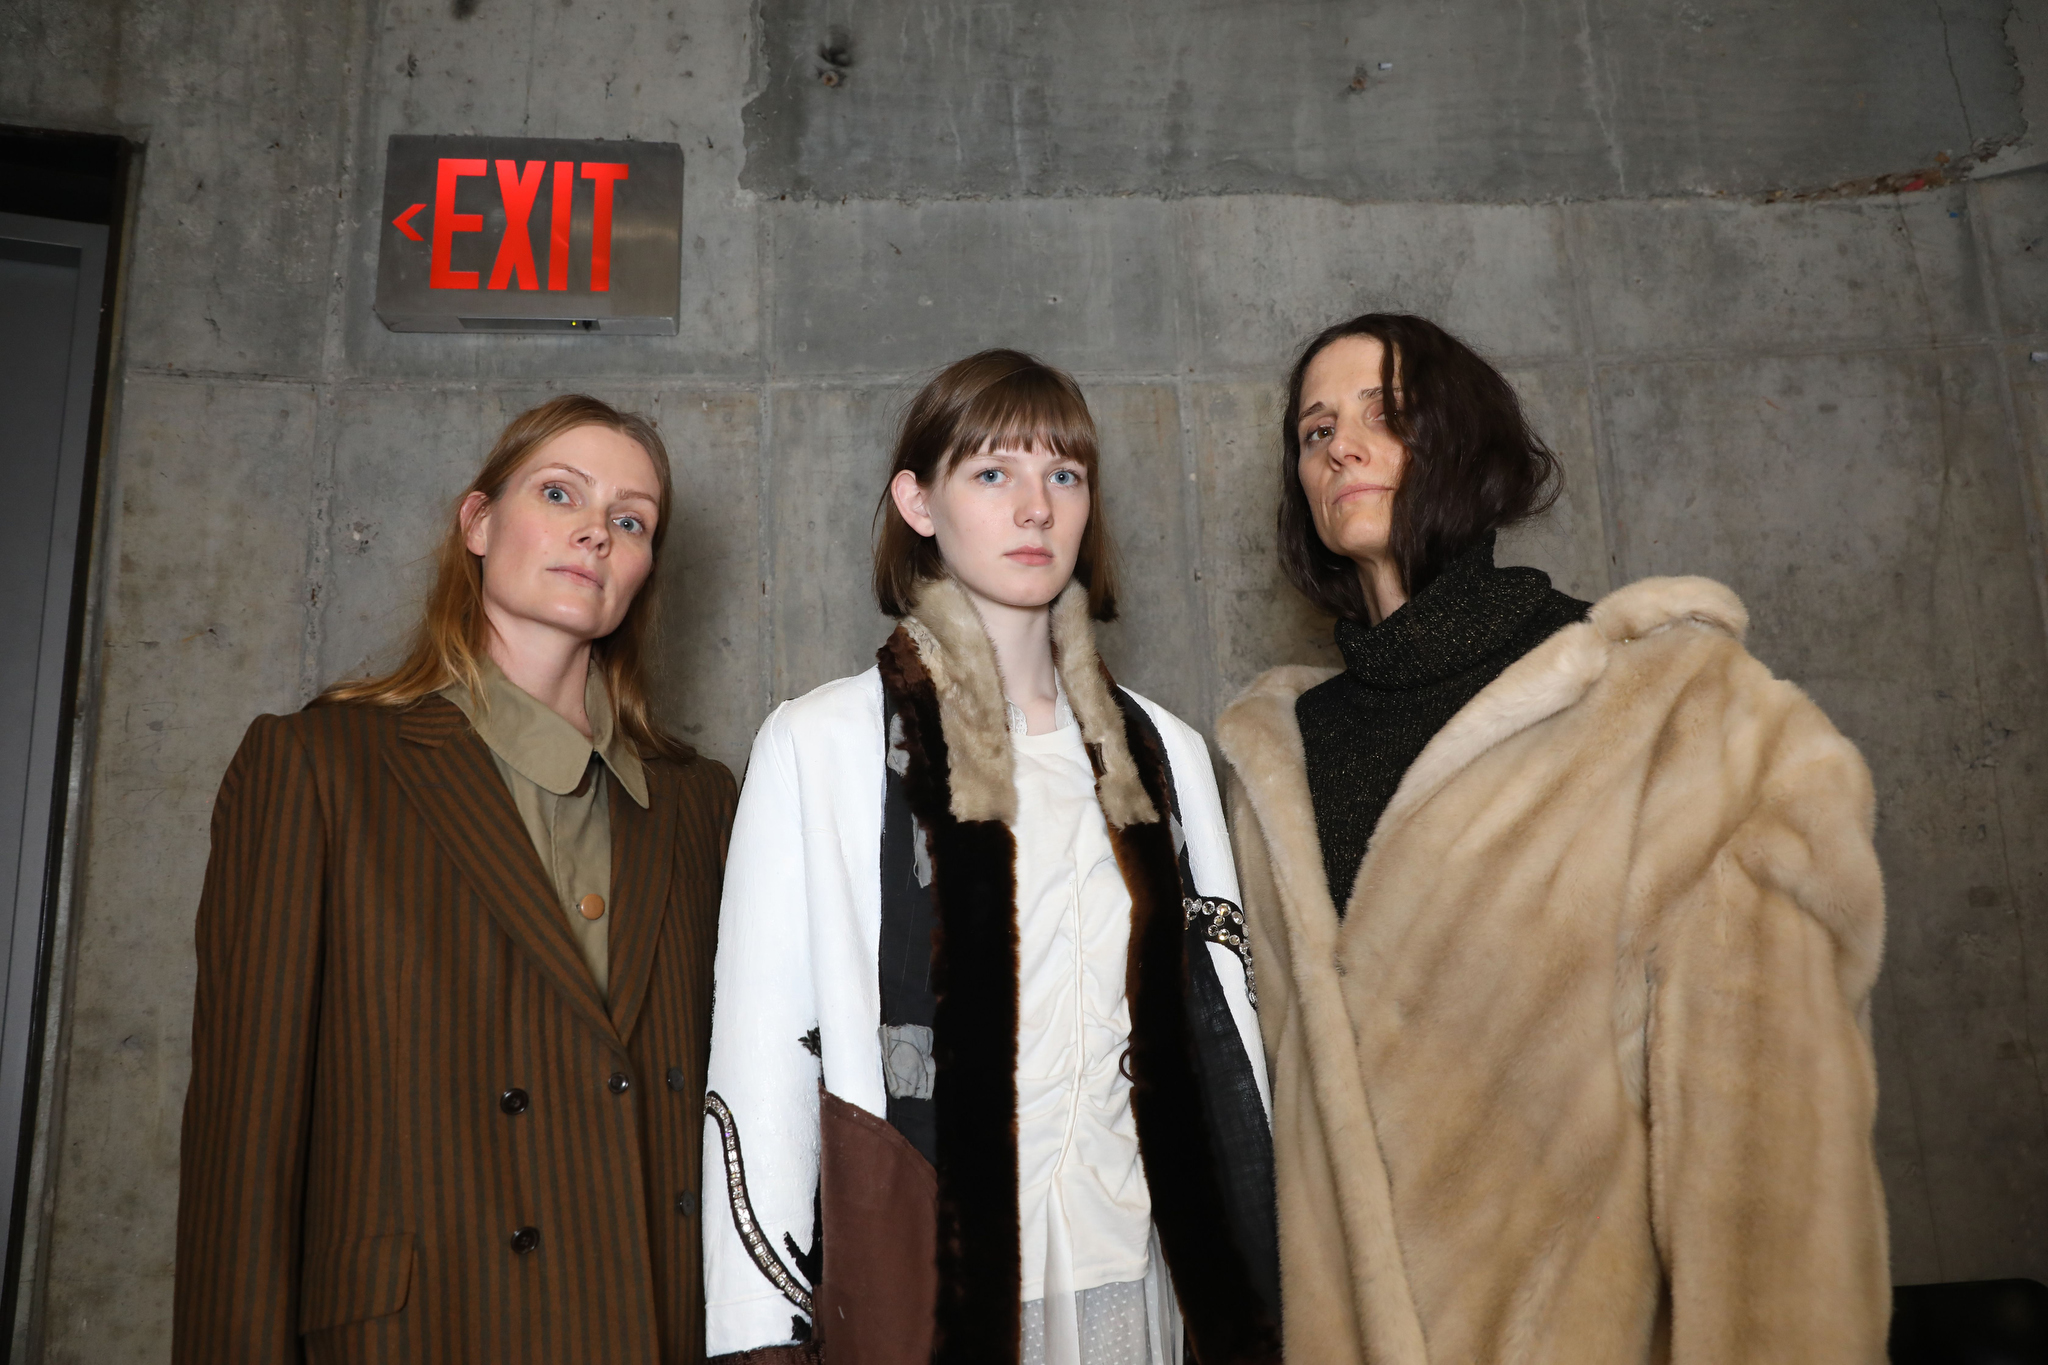 Backstage at Creatures of the Wind RTW Fall 2019